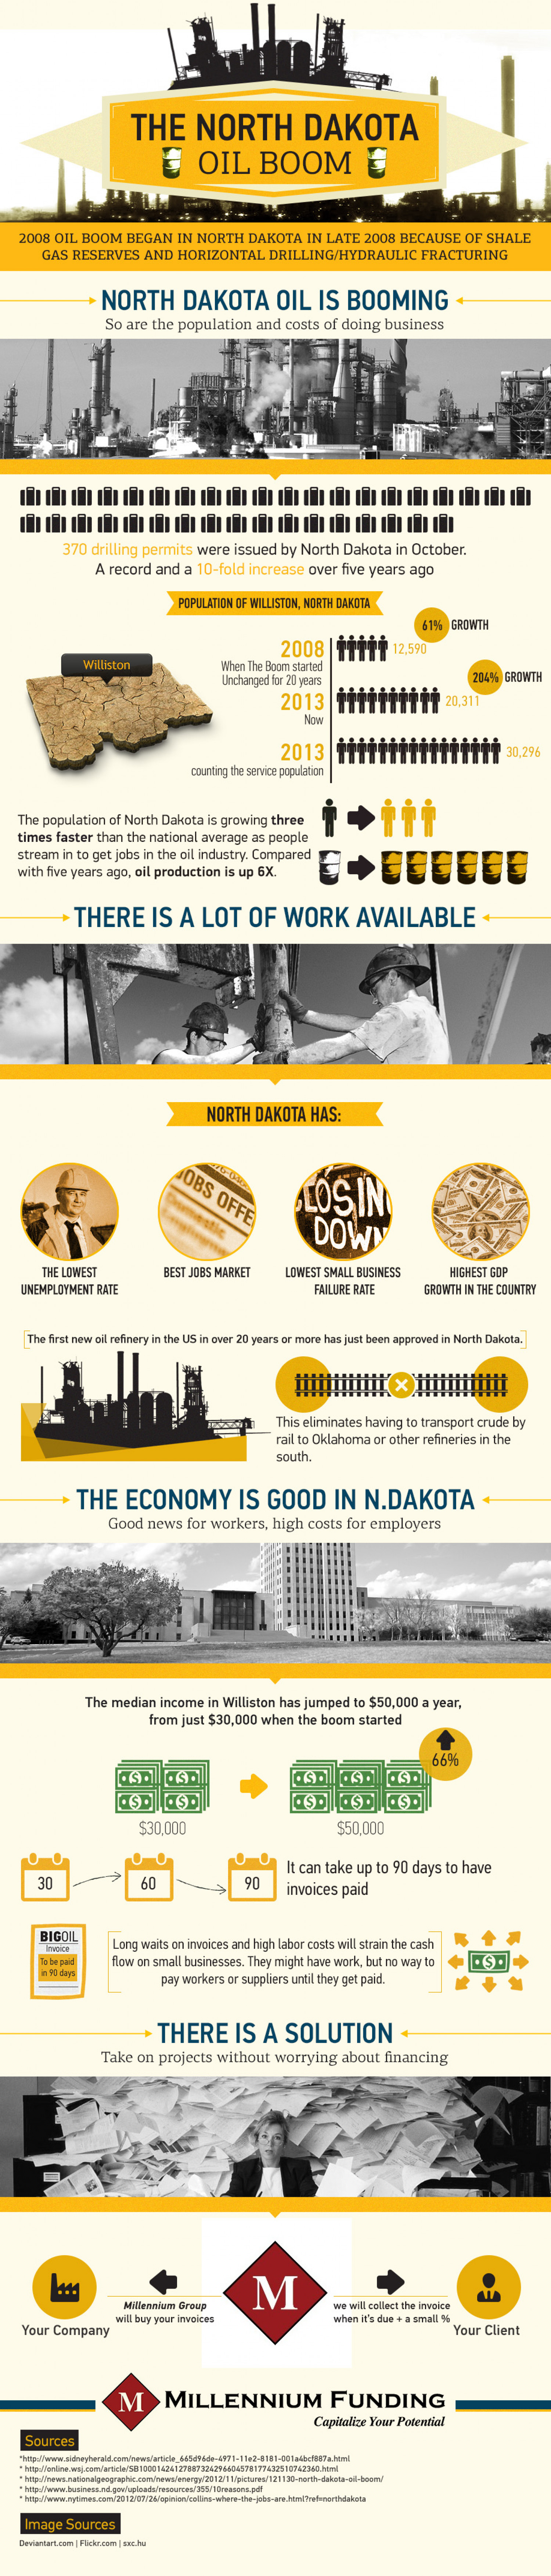 The North Dakota Oil Boom Infographic